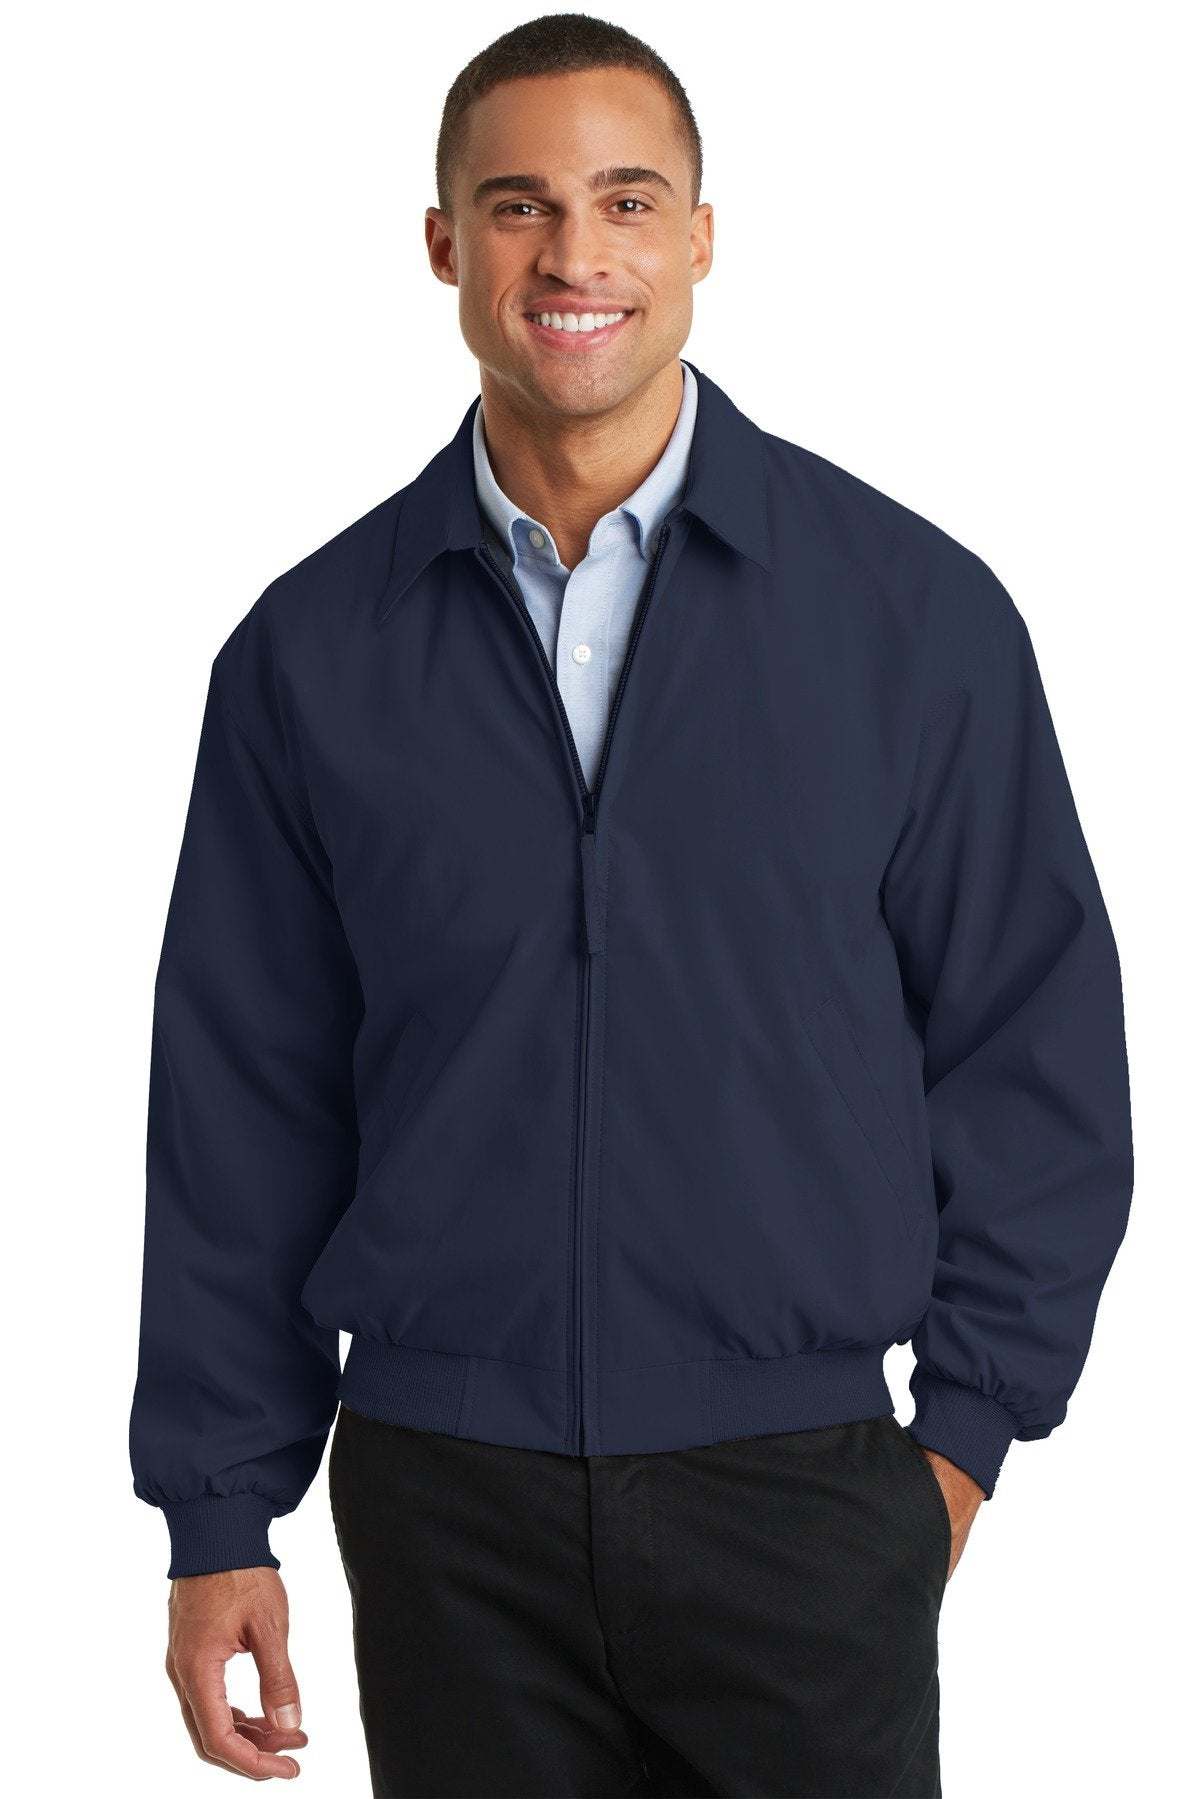 Bright Navy/Solid Pewter Lining - Port Authority J730